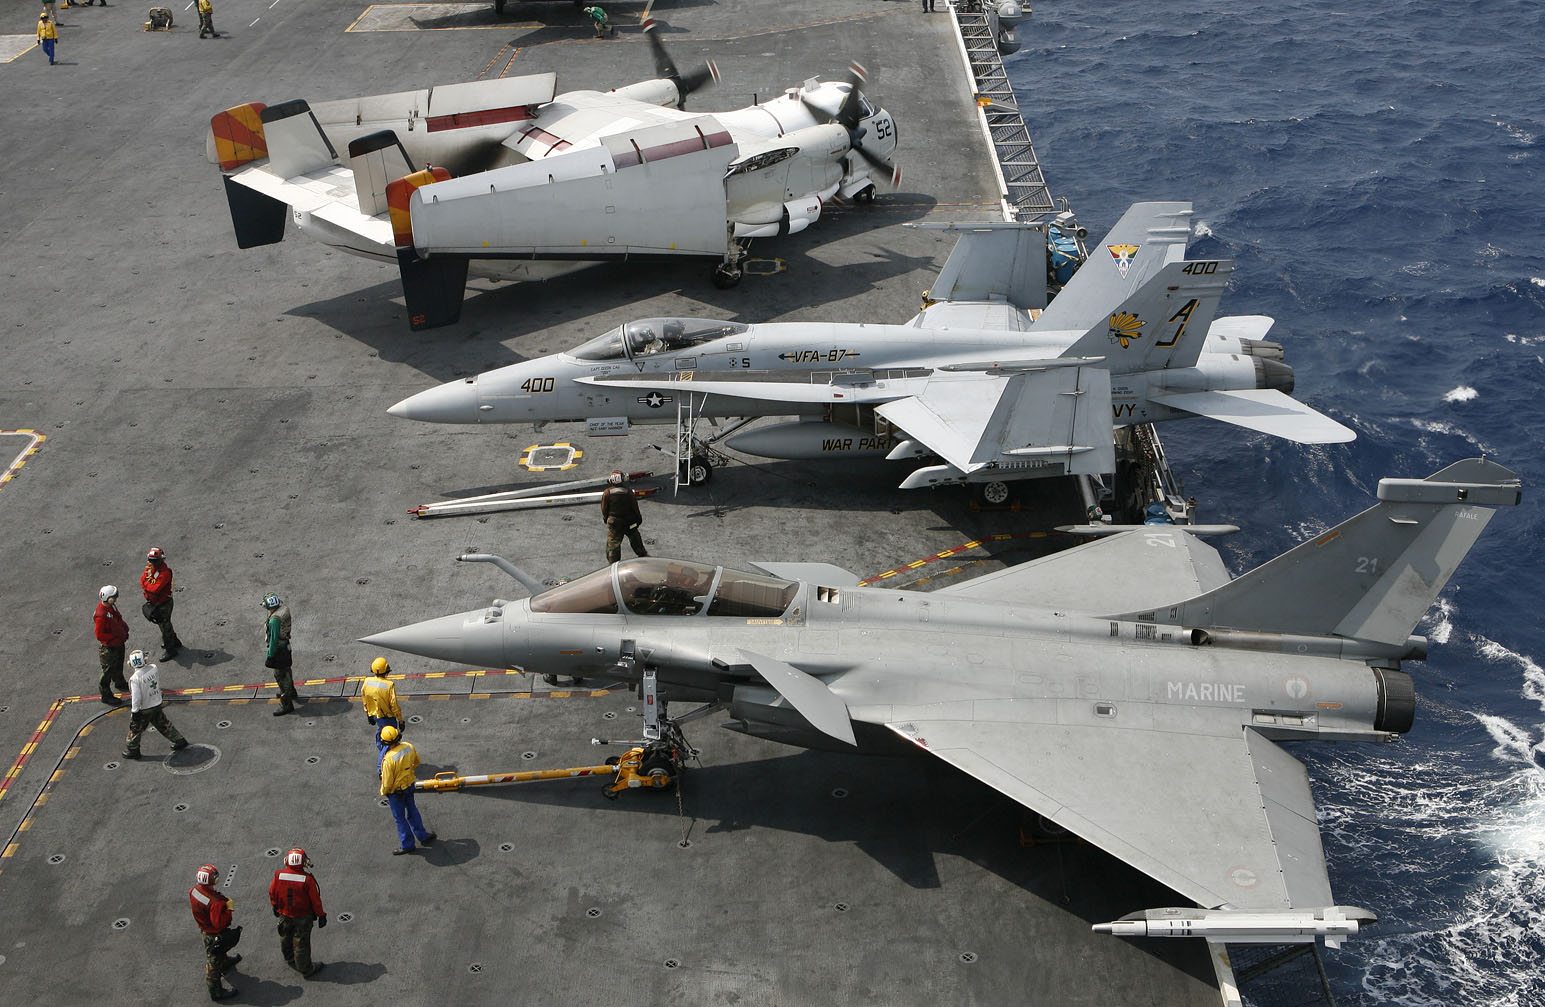 Le Meilleur Rafale News Brazil 2 New Aircraft Carriers In Sight Ce Mois Ci